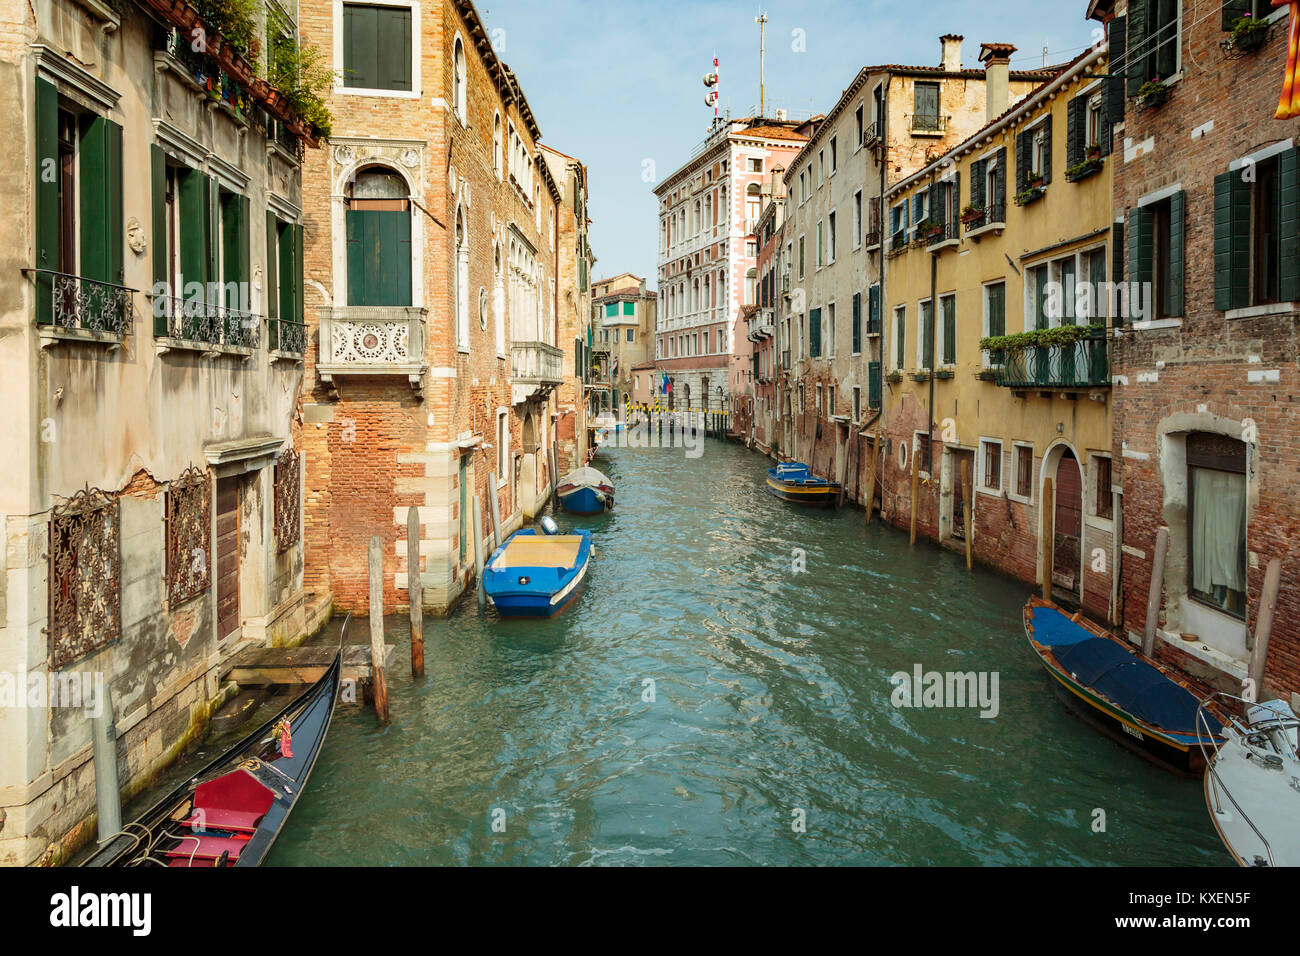 A canal view with boats in Veneto, Venice, Italy, Europe. - Stock Image